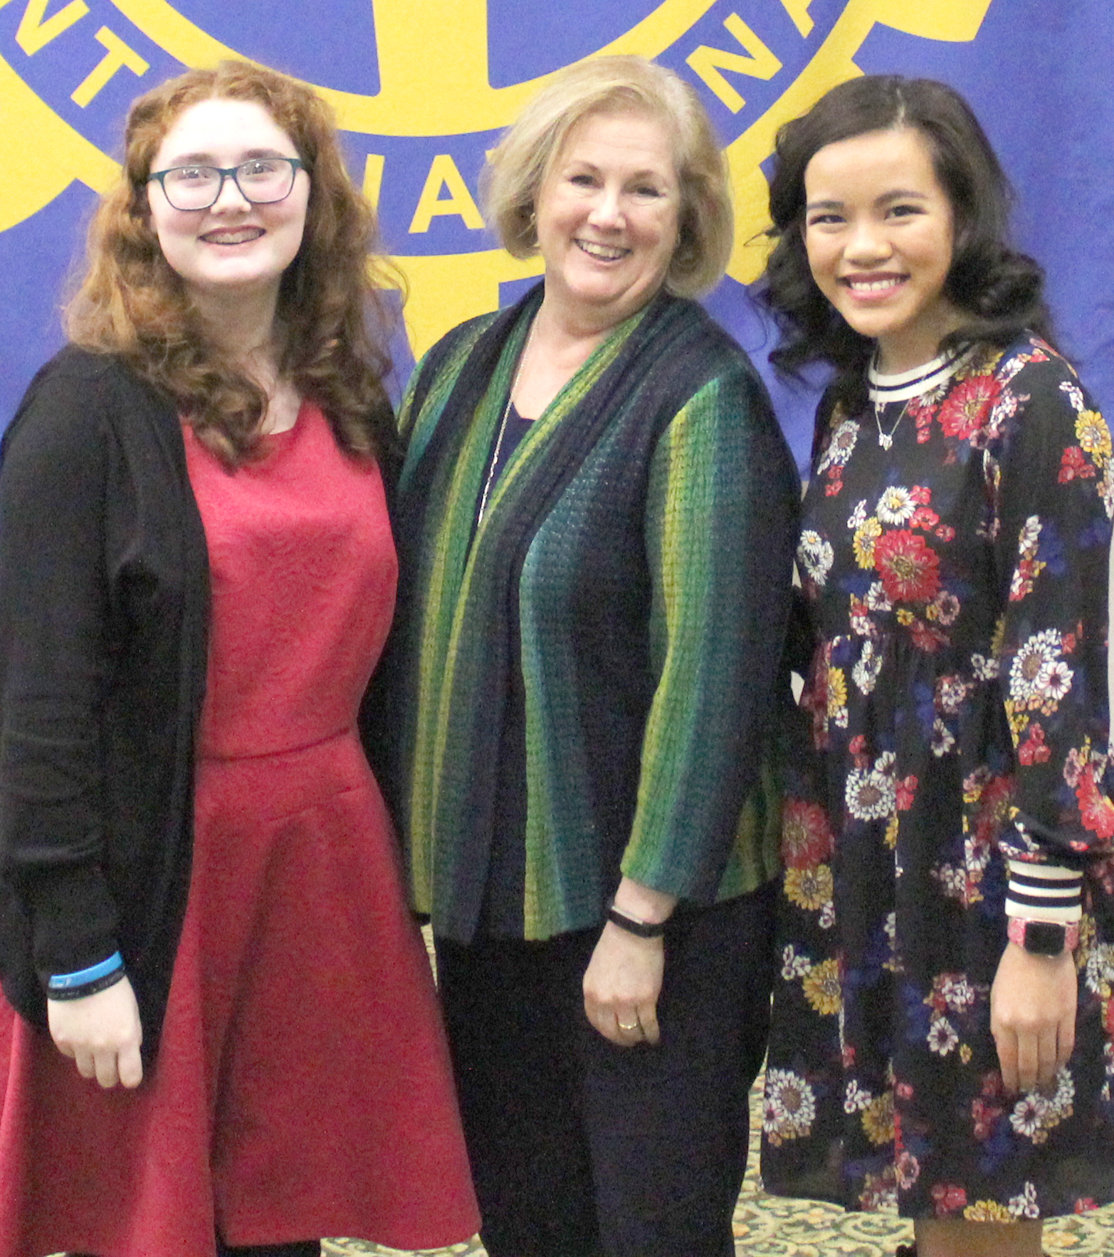 McKENZIE MANCINI, left, and Lily Bradney, right, pose with Rotary Club of Cleveland's Denise King shortly after they each delivered a speech during the club's weekly luncheon, held Tuesday at the Museum Center.